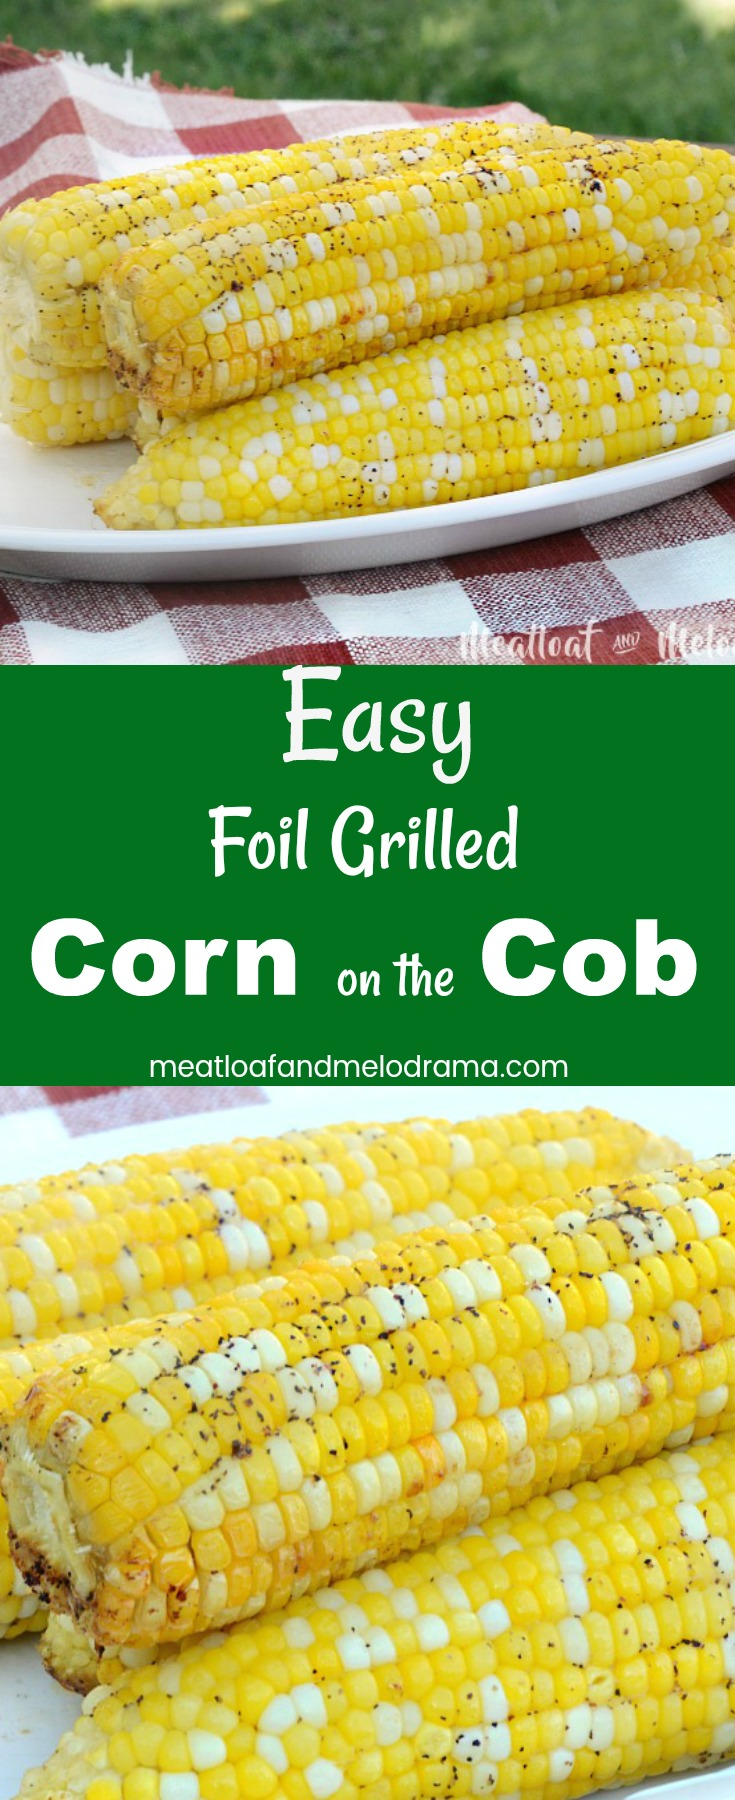 Easy Foil Grilled Corn on the Cob - A quick and easy recipe for grilled corn on the cob. Corn is slathered with garlic butter, salt and pepper then grilled to perfection. Makes a fantastic summer side dish that takes 15 minutes to make and has almost no cleaning up!